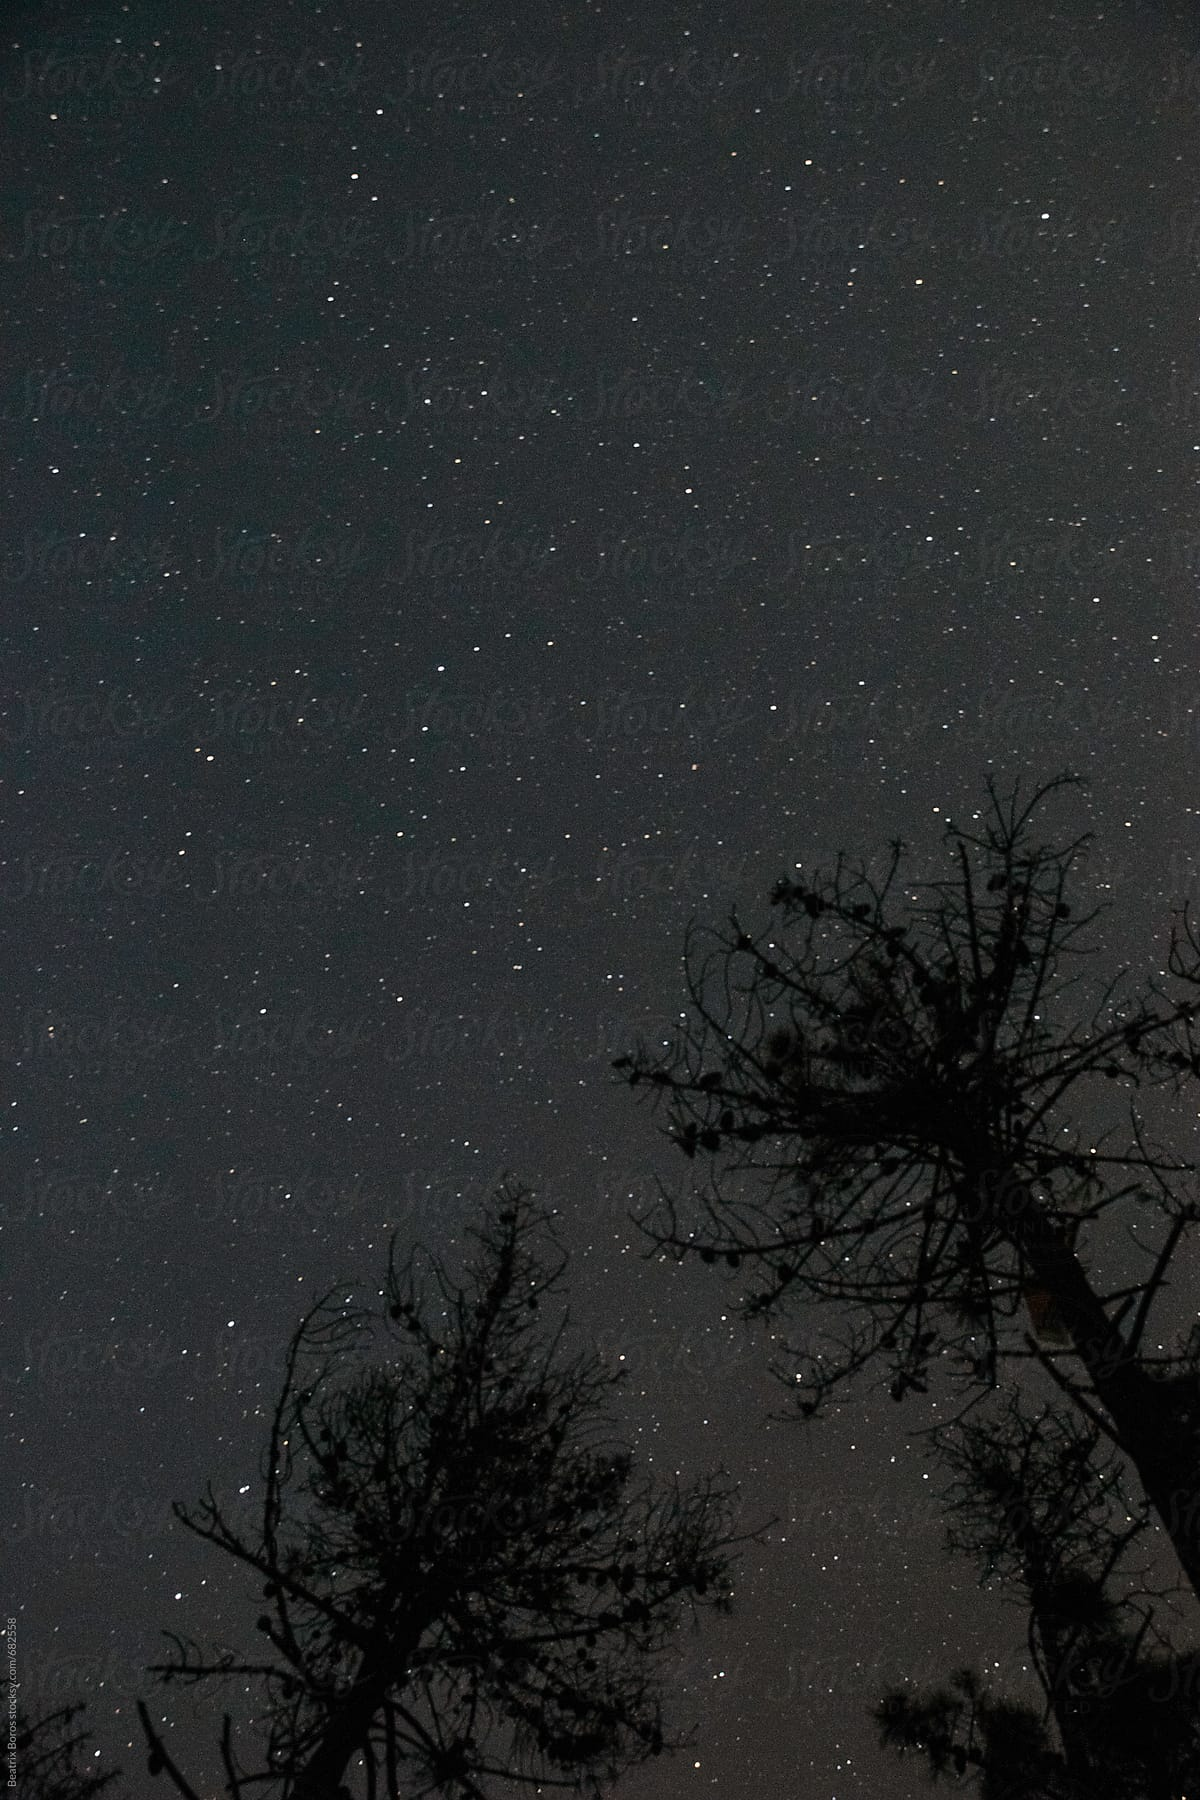 Dark starry night sky with two stone pine silhouettes by Beatrix